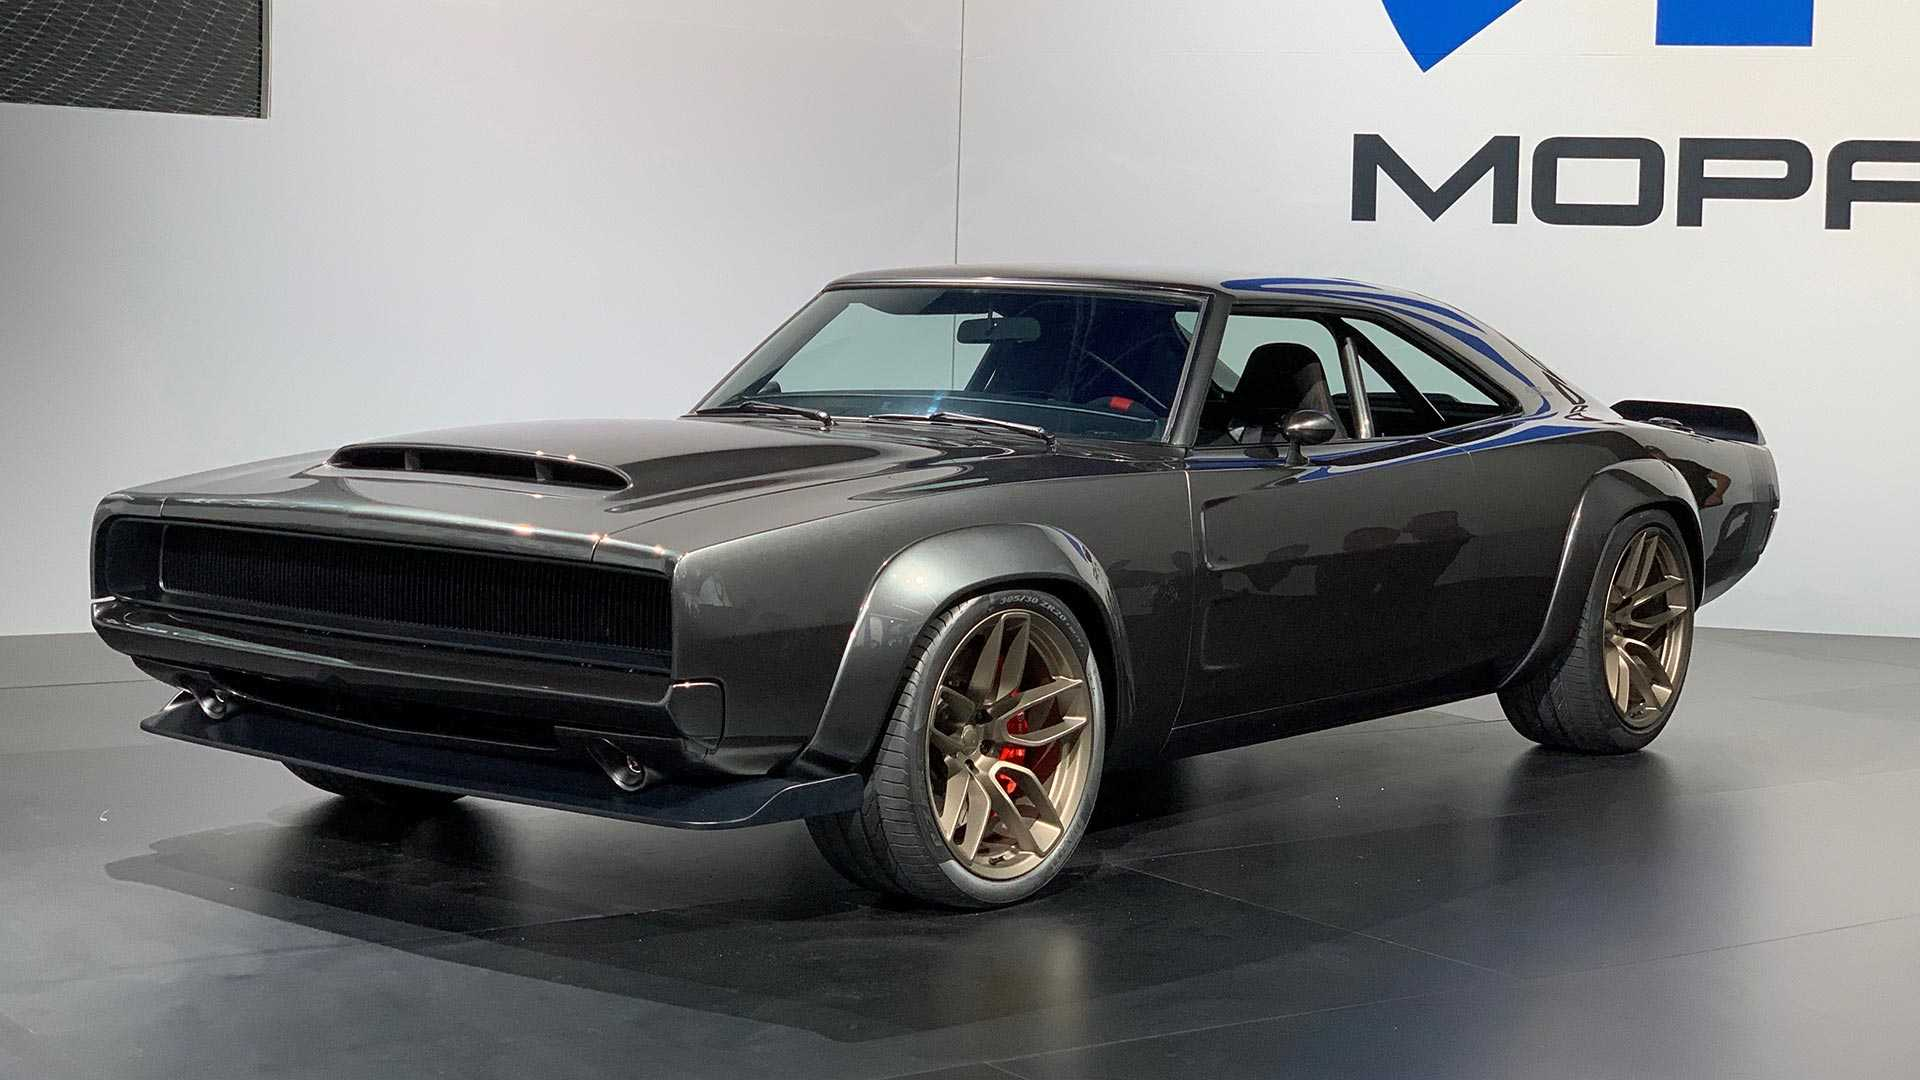 Mopar 426 Hemi Returns As A 1 000 Hp Hellephant Supercharged V8